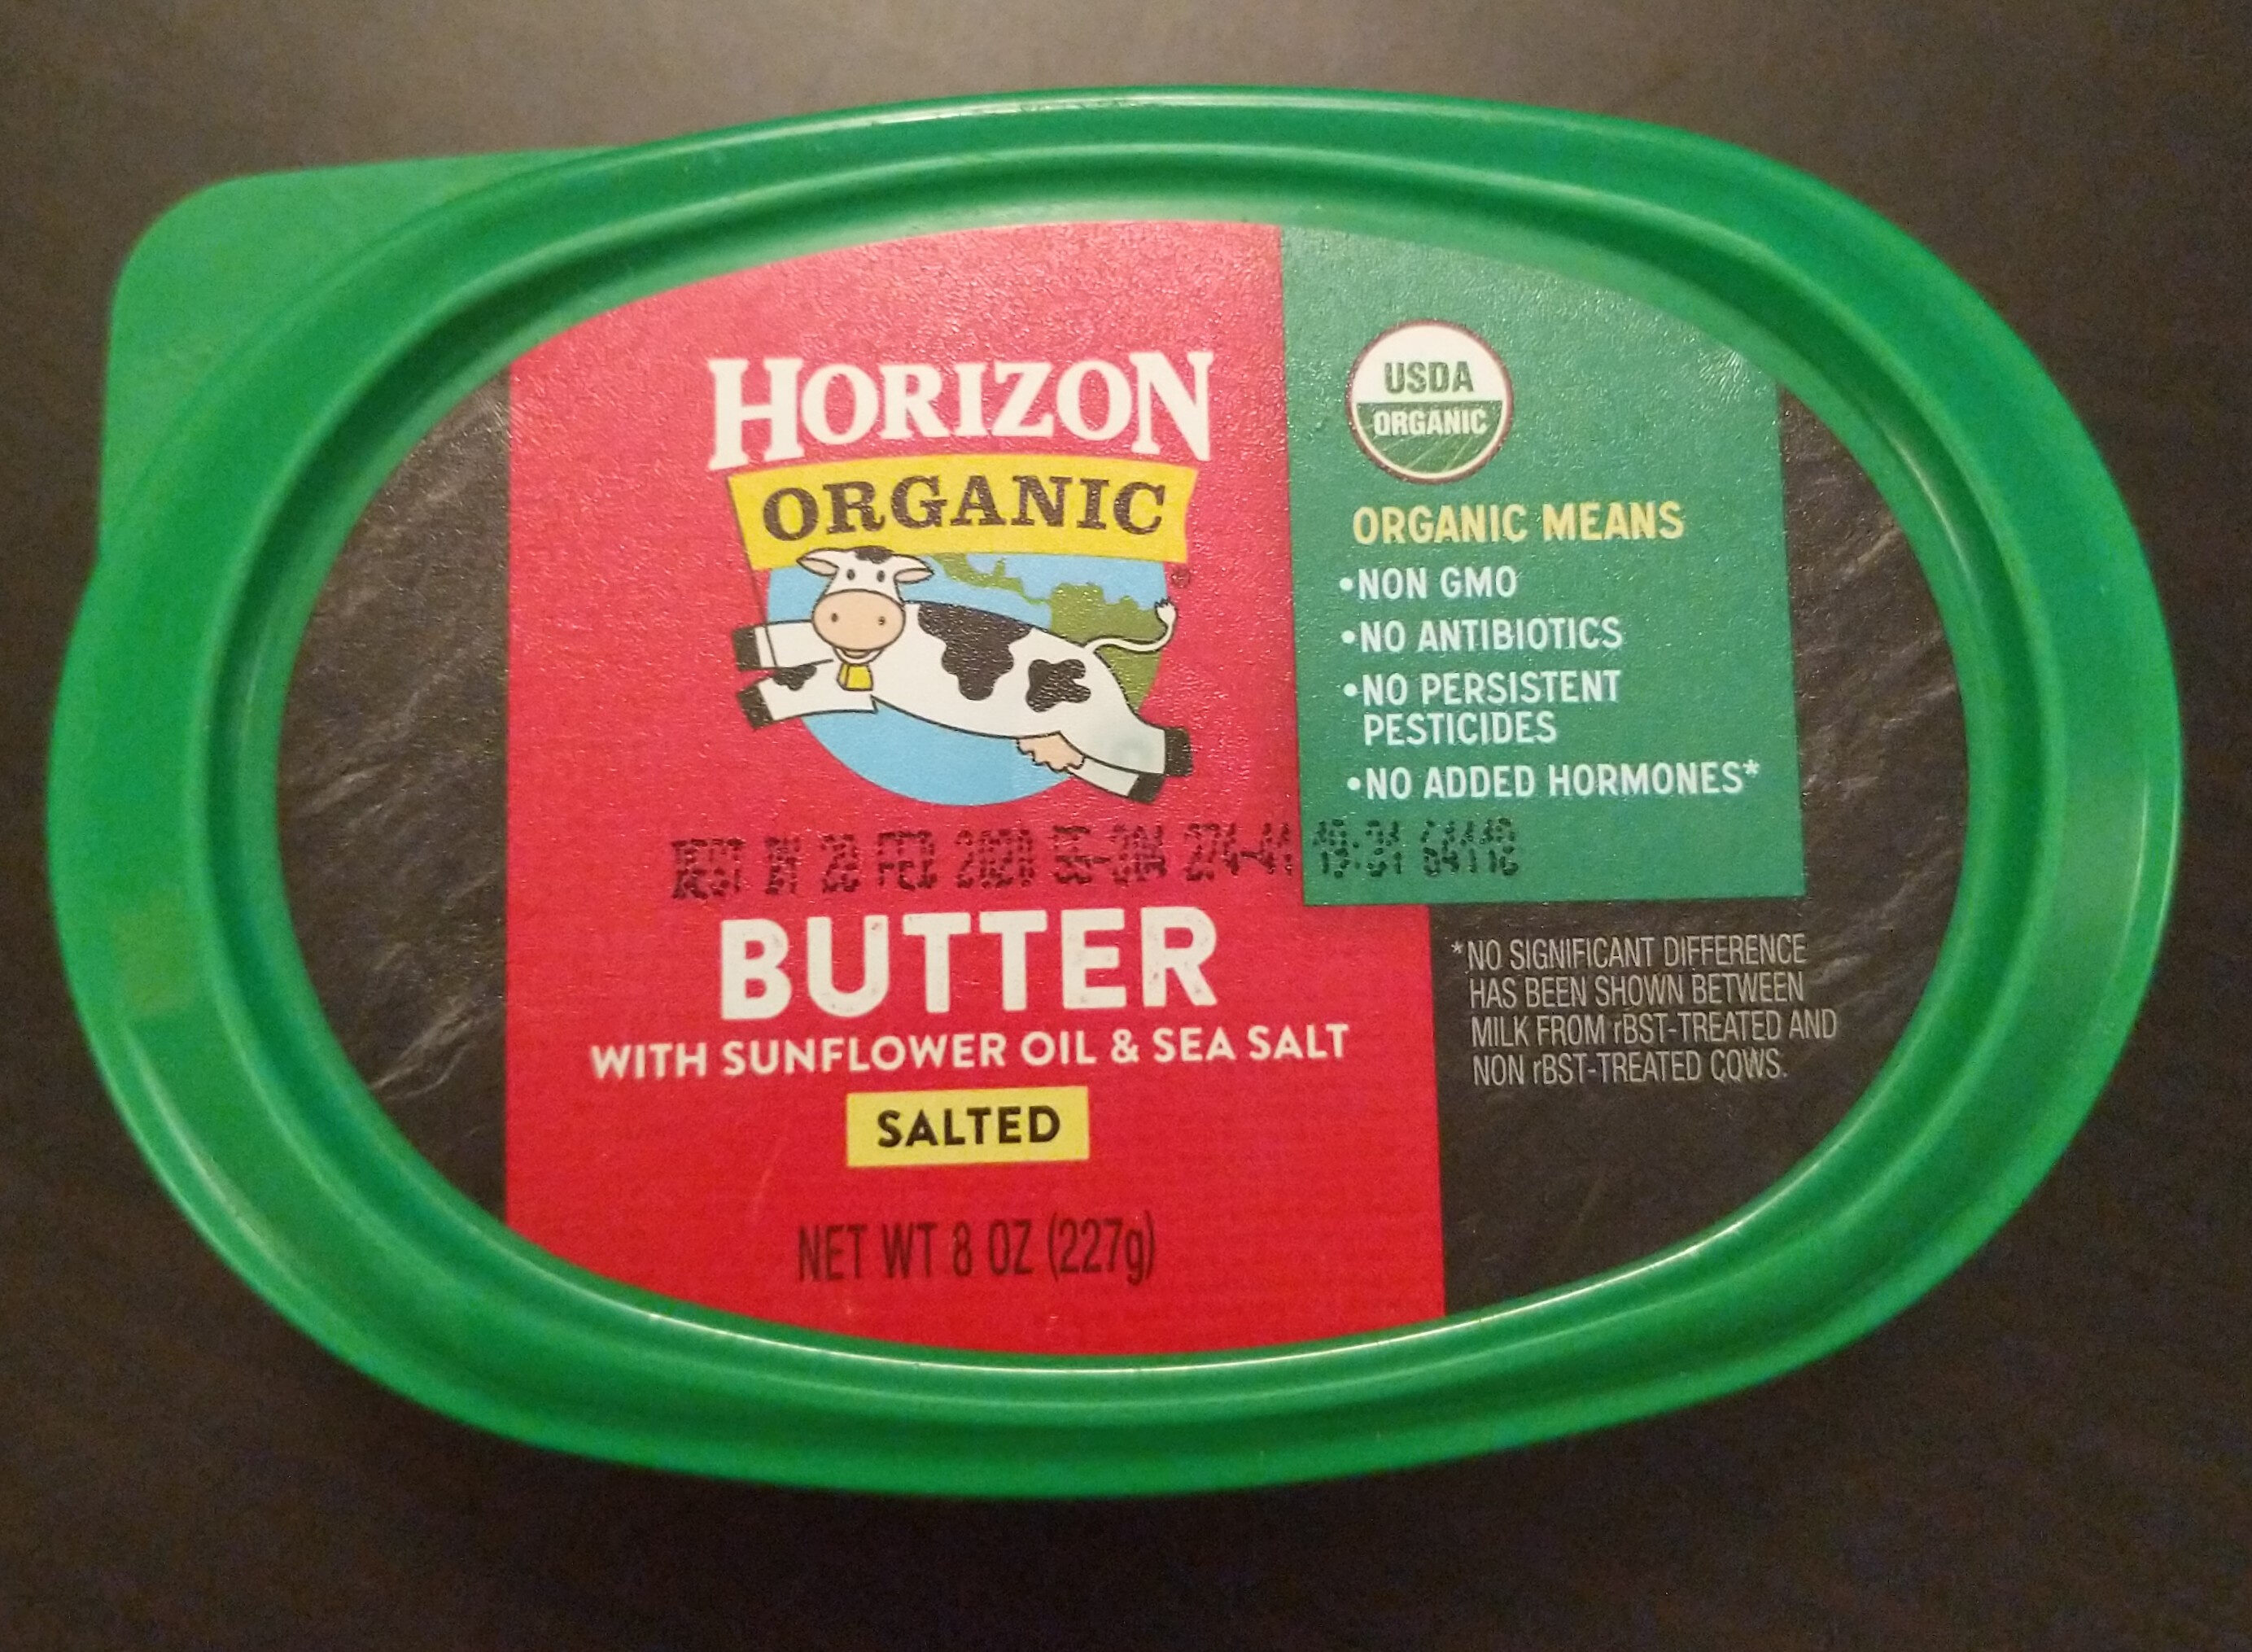 Salted organic spreadable butter with sunflower oil & sea salt - Product - en